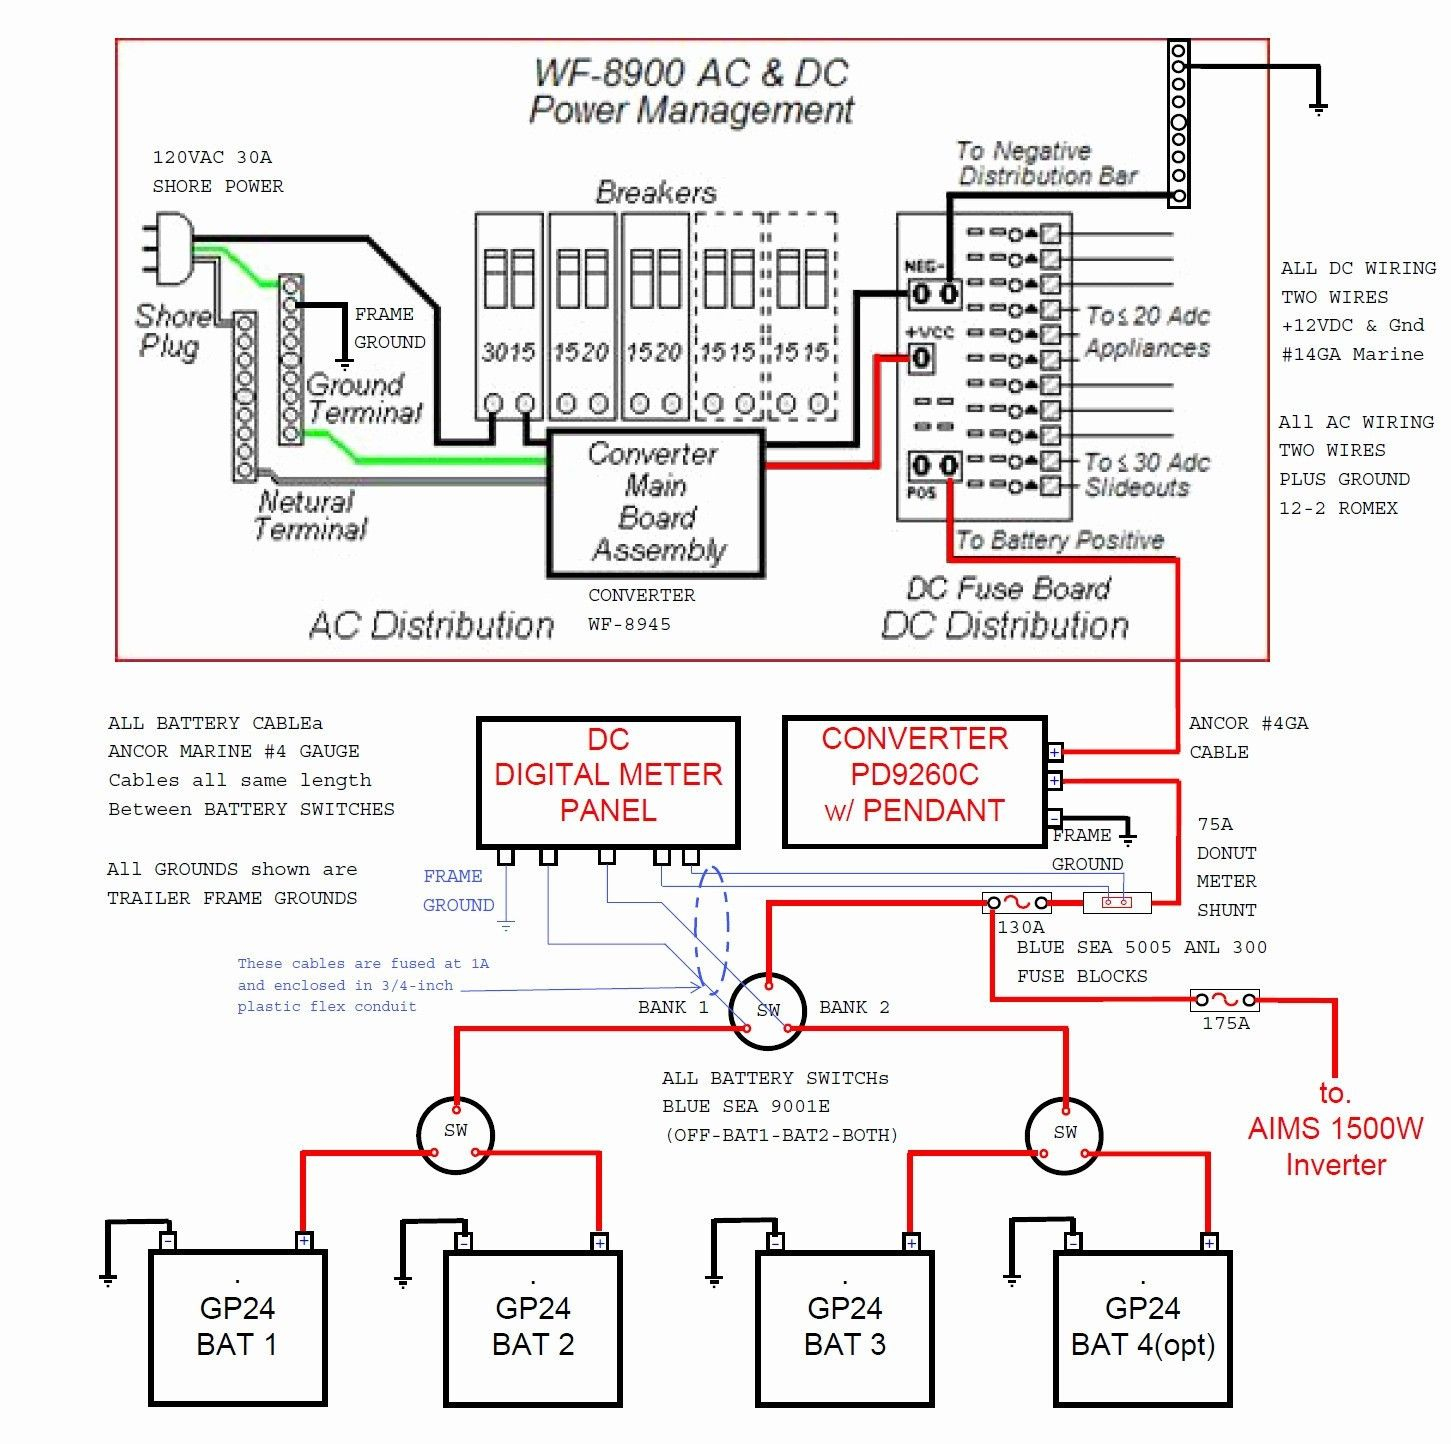 30 Amp Rv Plug Wiring Diagram Inspirational Wiring Diagram For Rv - 30 Amp Plug Wiring Diagram